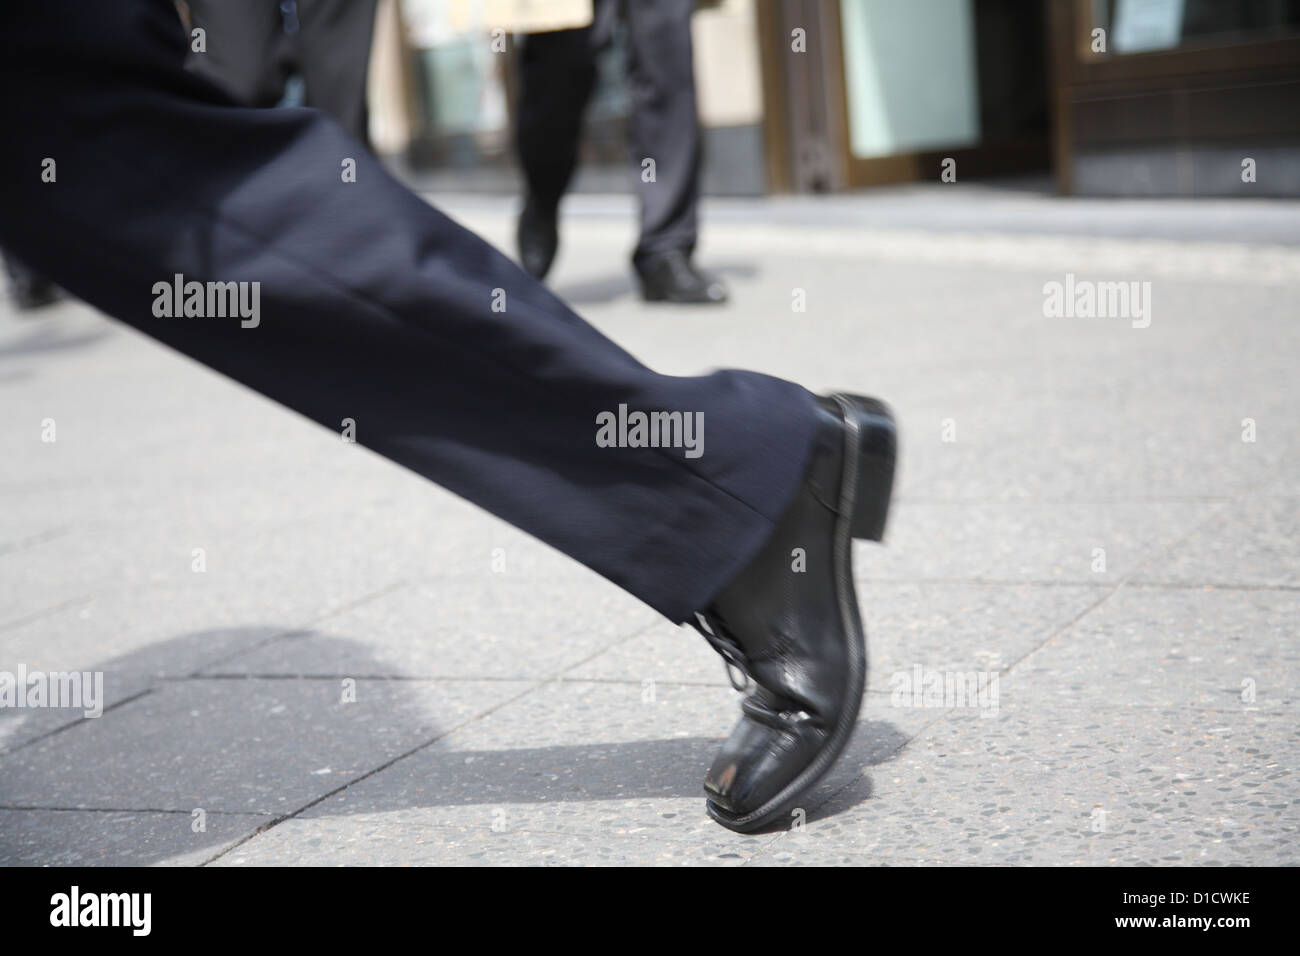 Berlin, Germany, leg of a passerby on the street - Stock Image